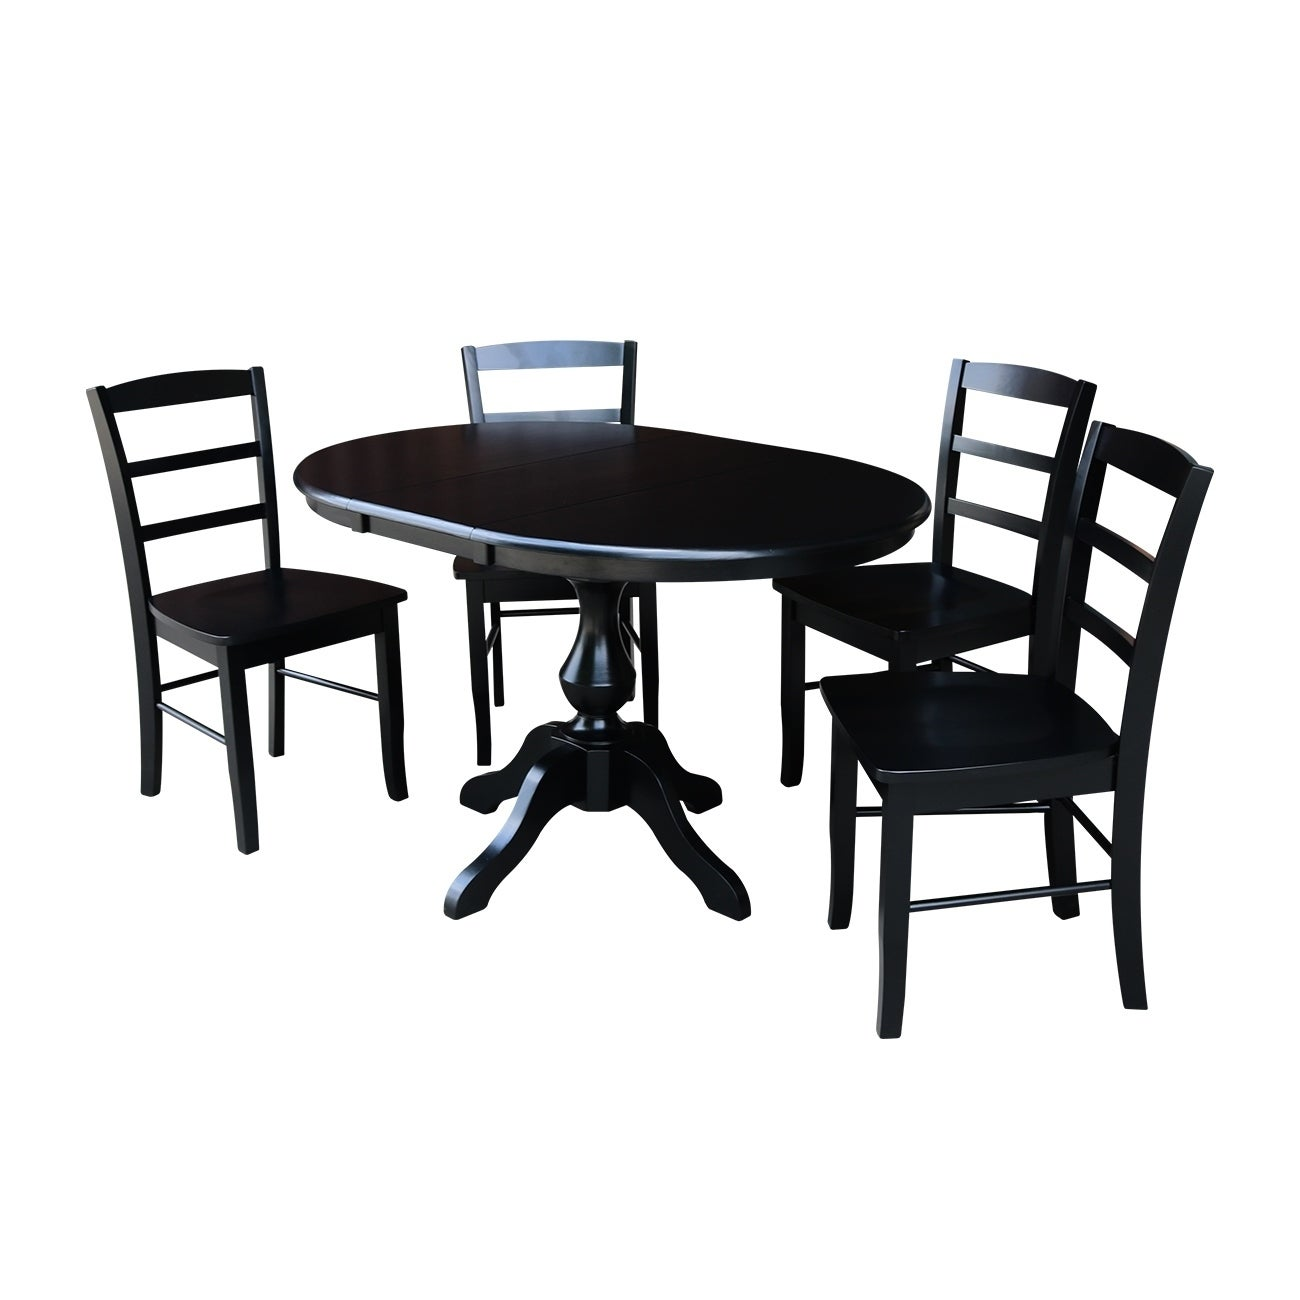 "Black Dining Table With Leaf: 36"" Round Dining Table With 12"" Leaf And 4 Madrid Chairs"